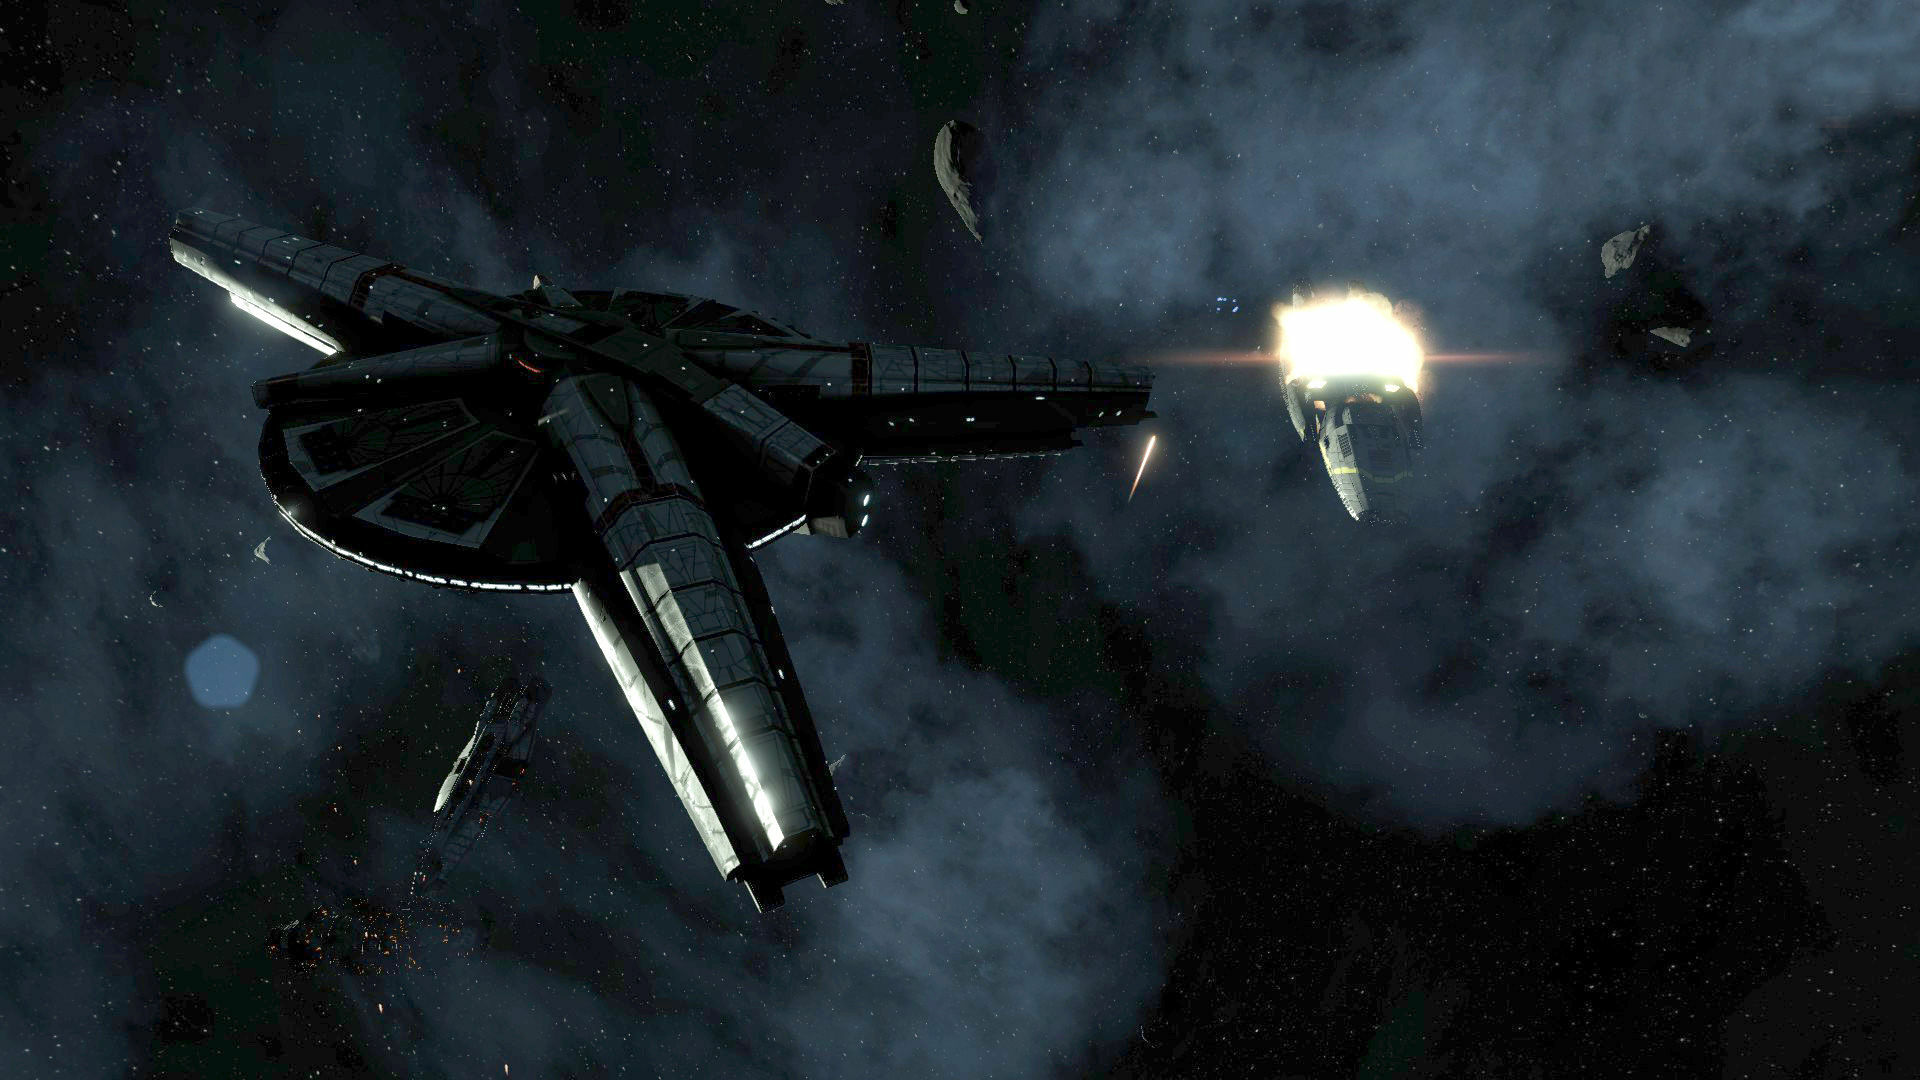 Airplane! - Wikipedia Funny battlestar galactica pictures